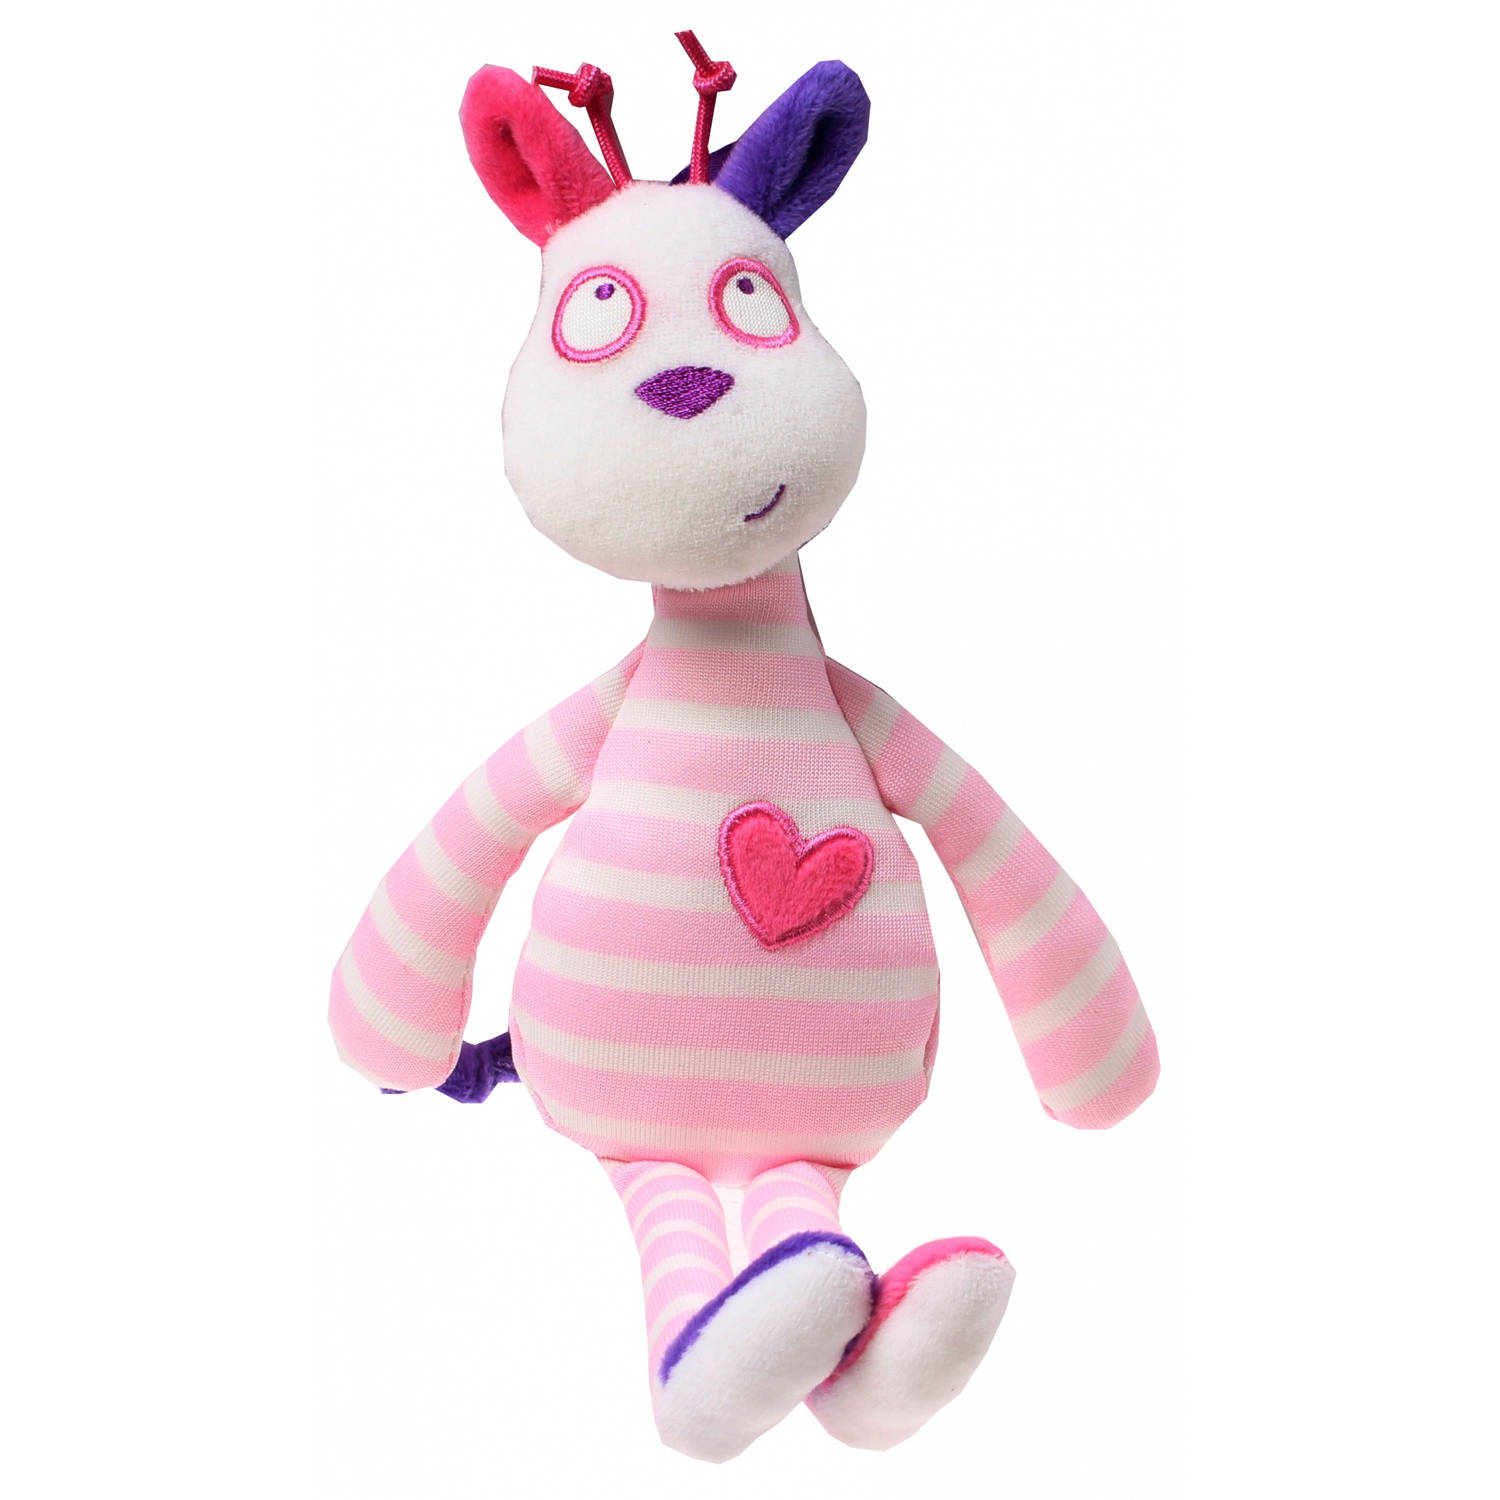 Luminou Glow In The Dark knuffel giraffe roze 28 cm